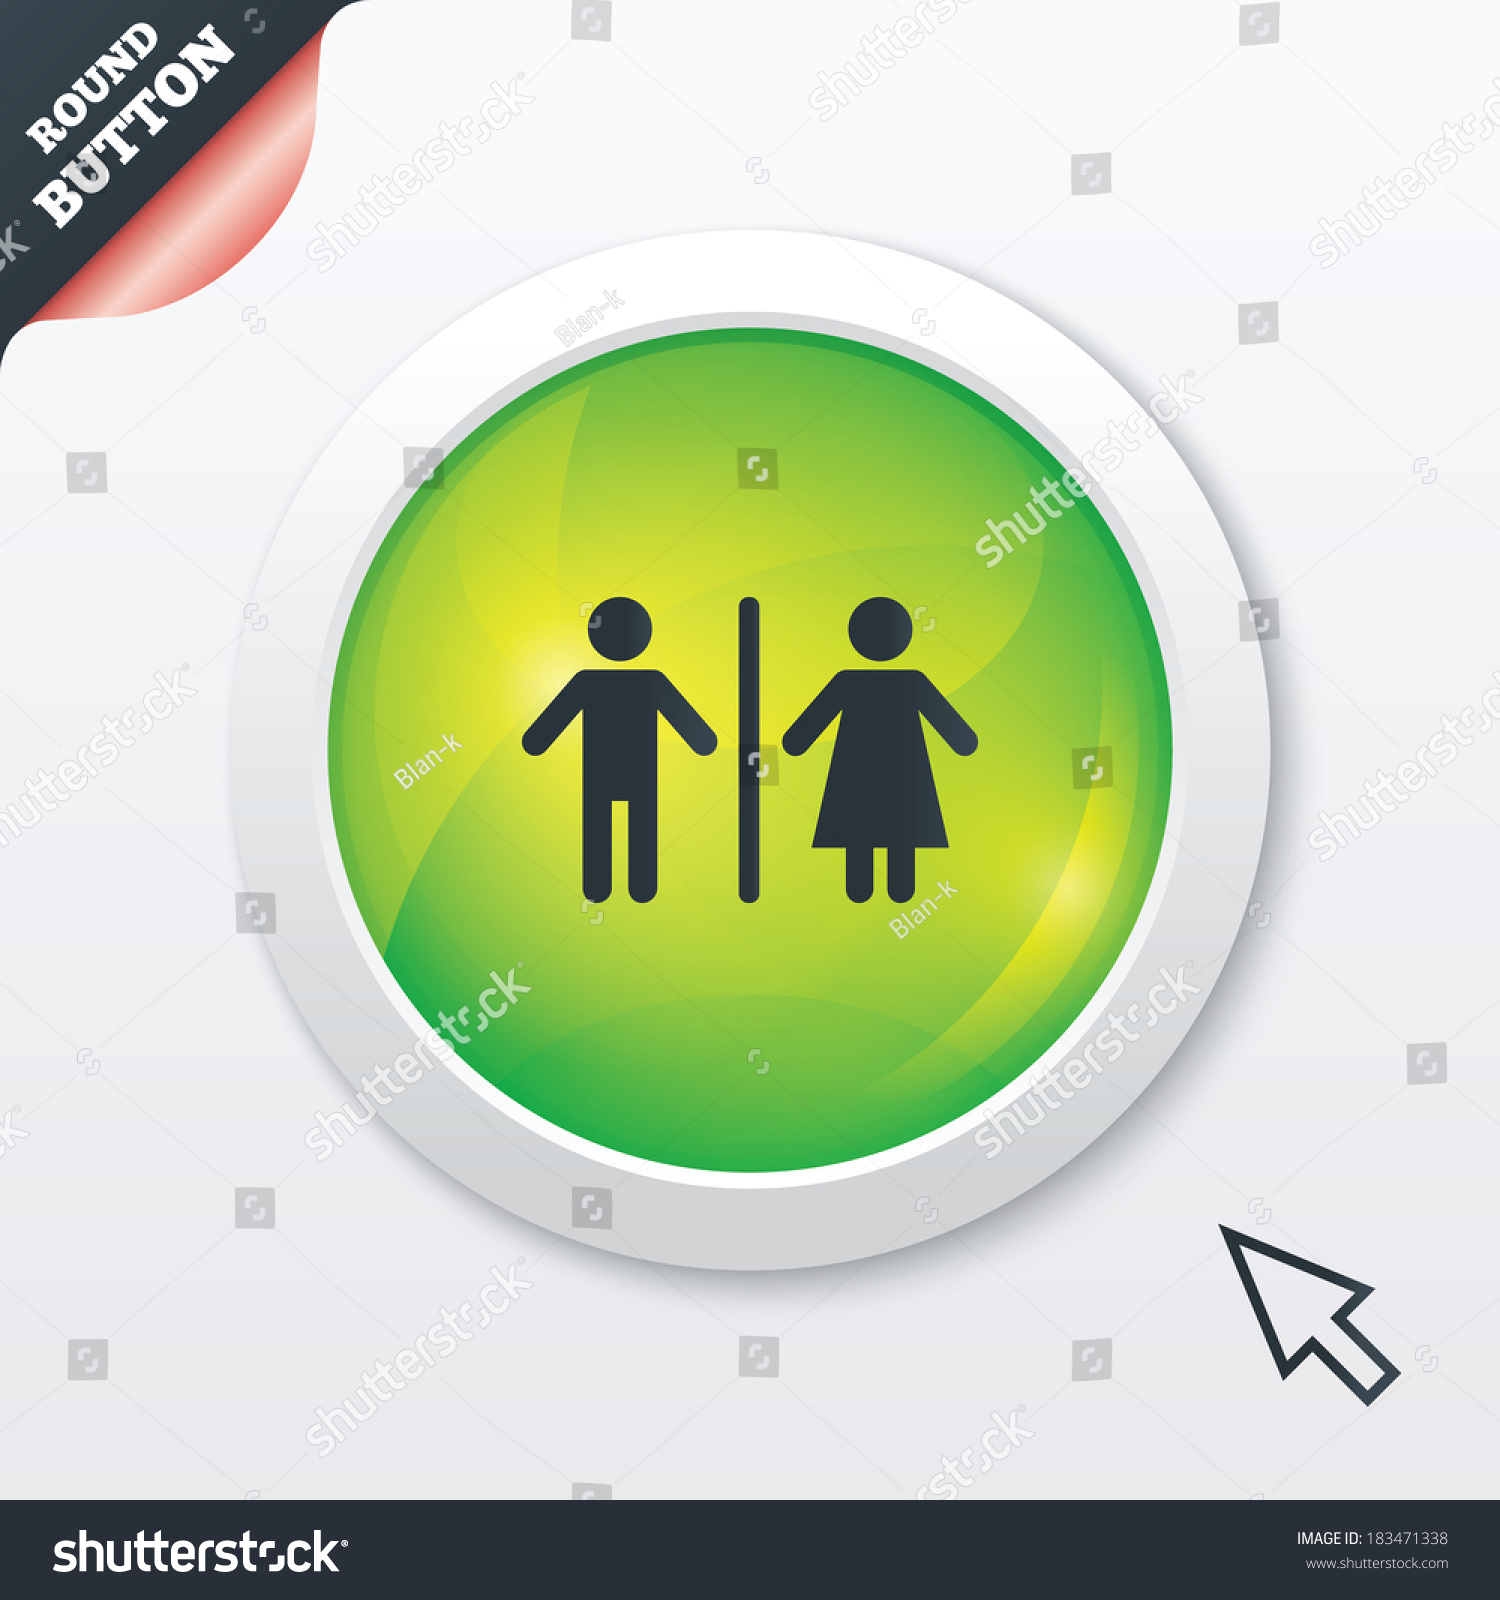 Toilet signs vector set stock images image 36323784 - Wc Sign Icon Toilet Symbol Male Stock Vector 183471338 Shutterstock Stock Vector Wc Sign Icon Toilet Symbol Male And Female Toilet Green Shiny Button Modern